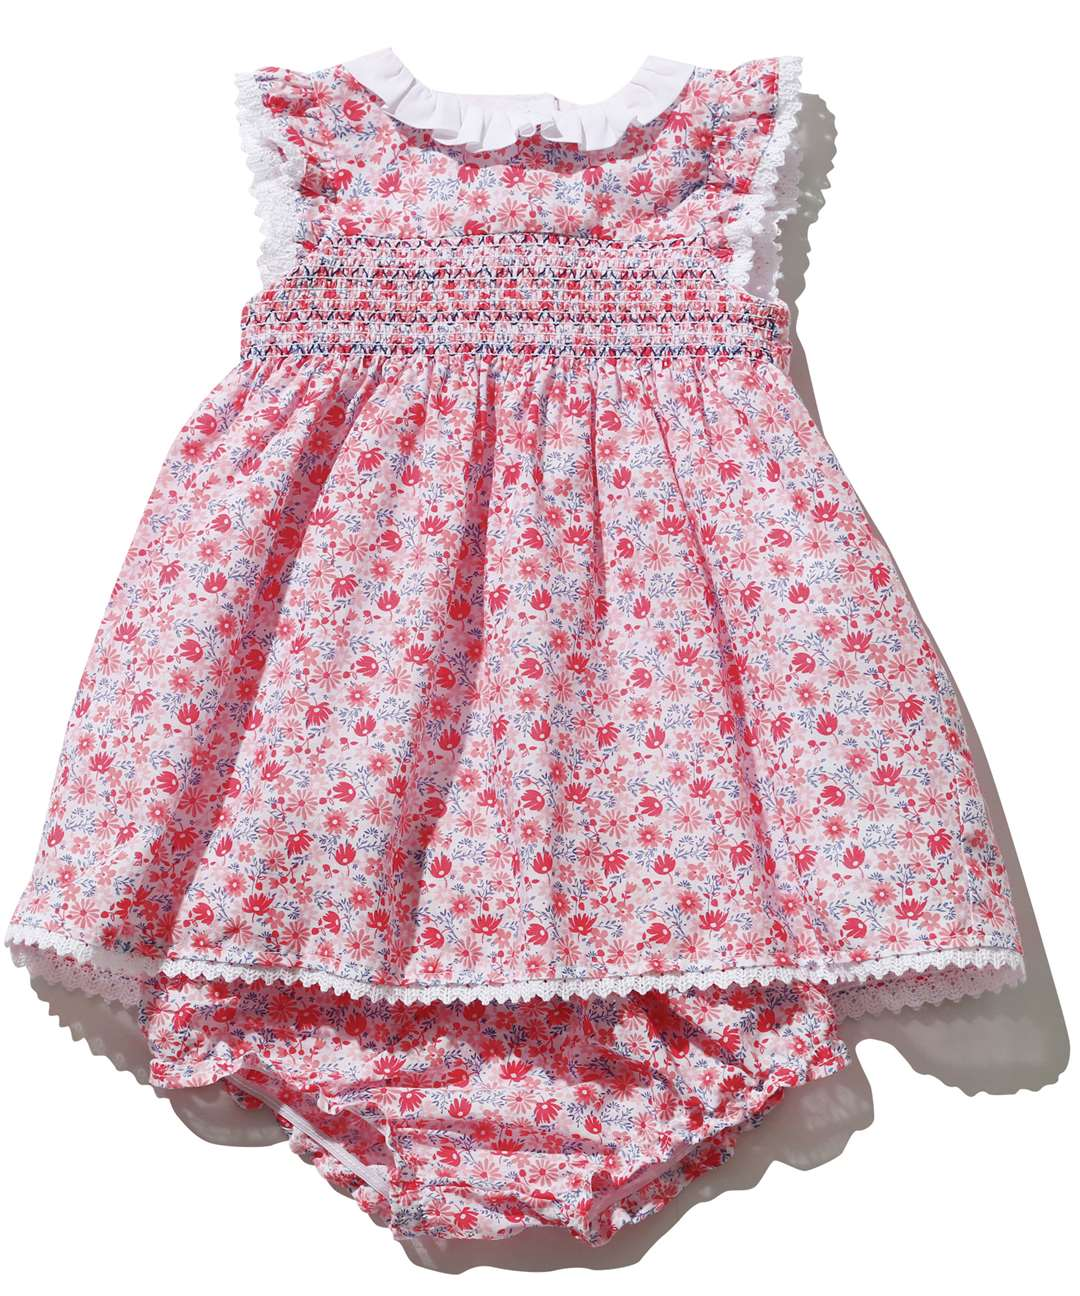 M&Co Floral Print Smock Dress, ages 0-3, from £18